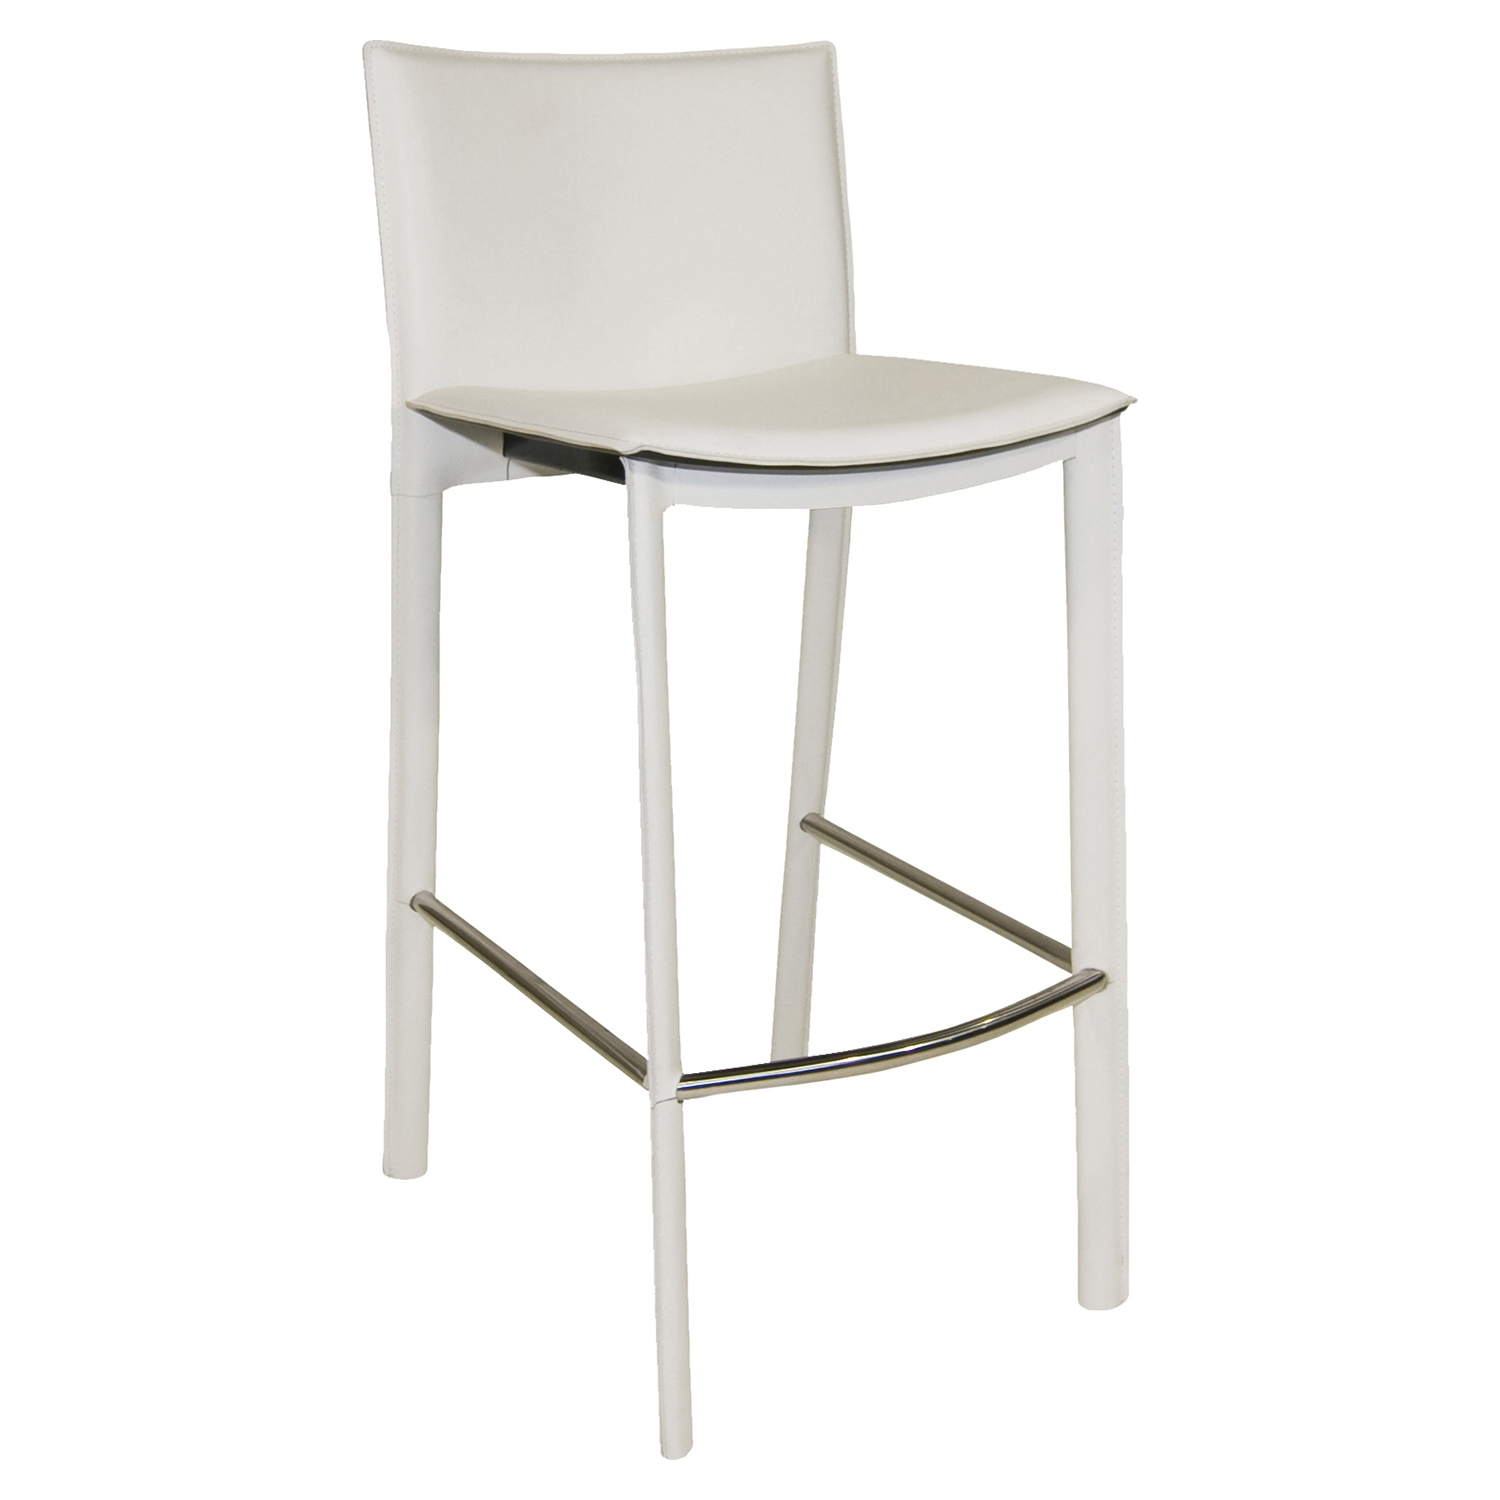 Panca Counter Stool - White